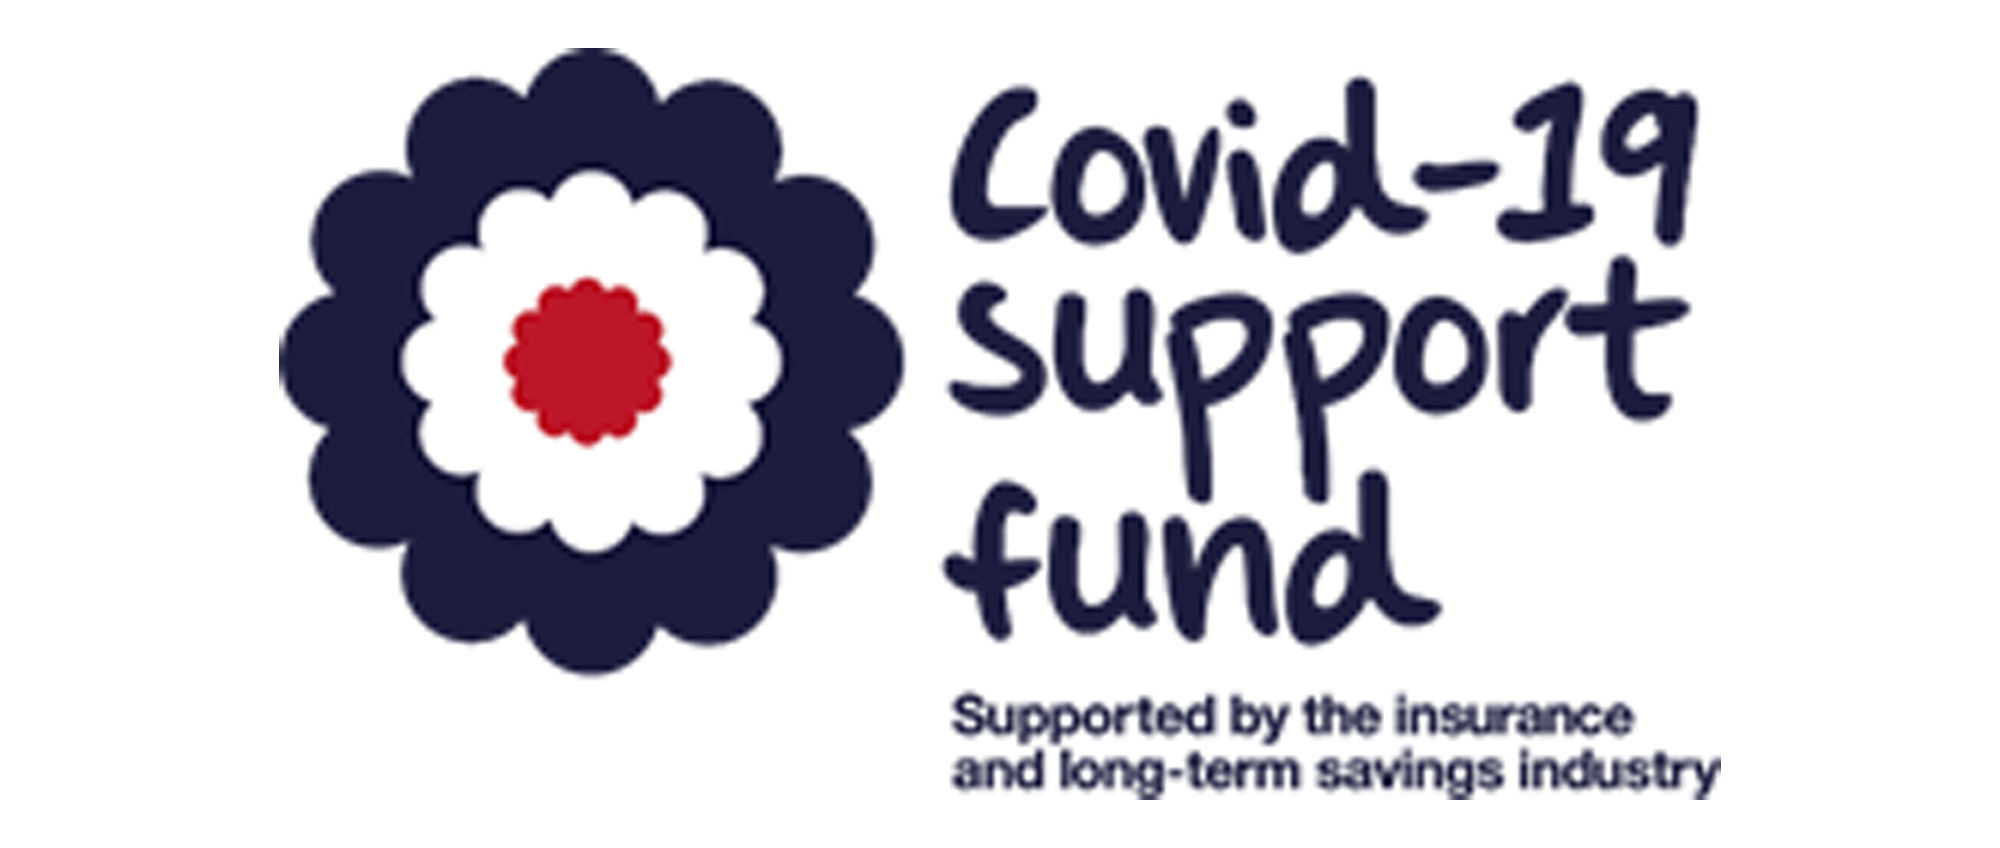 Covid support fund logo